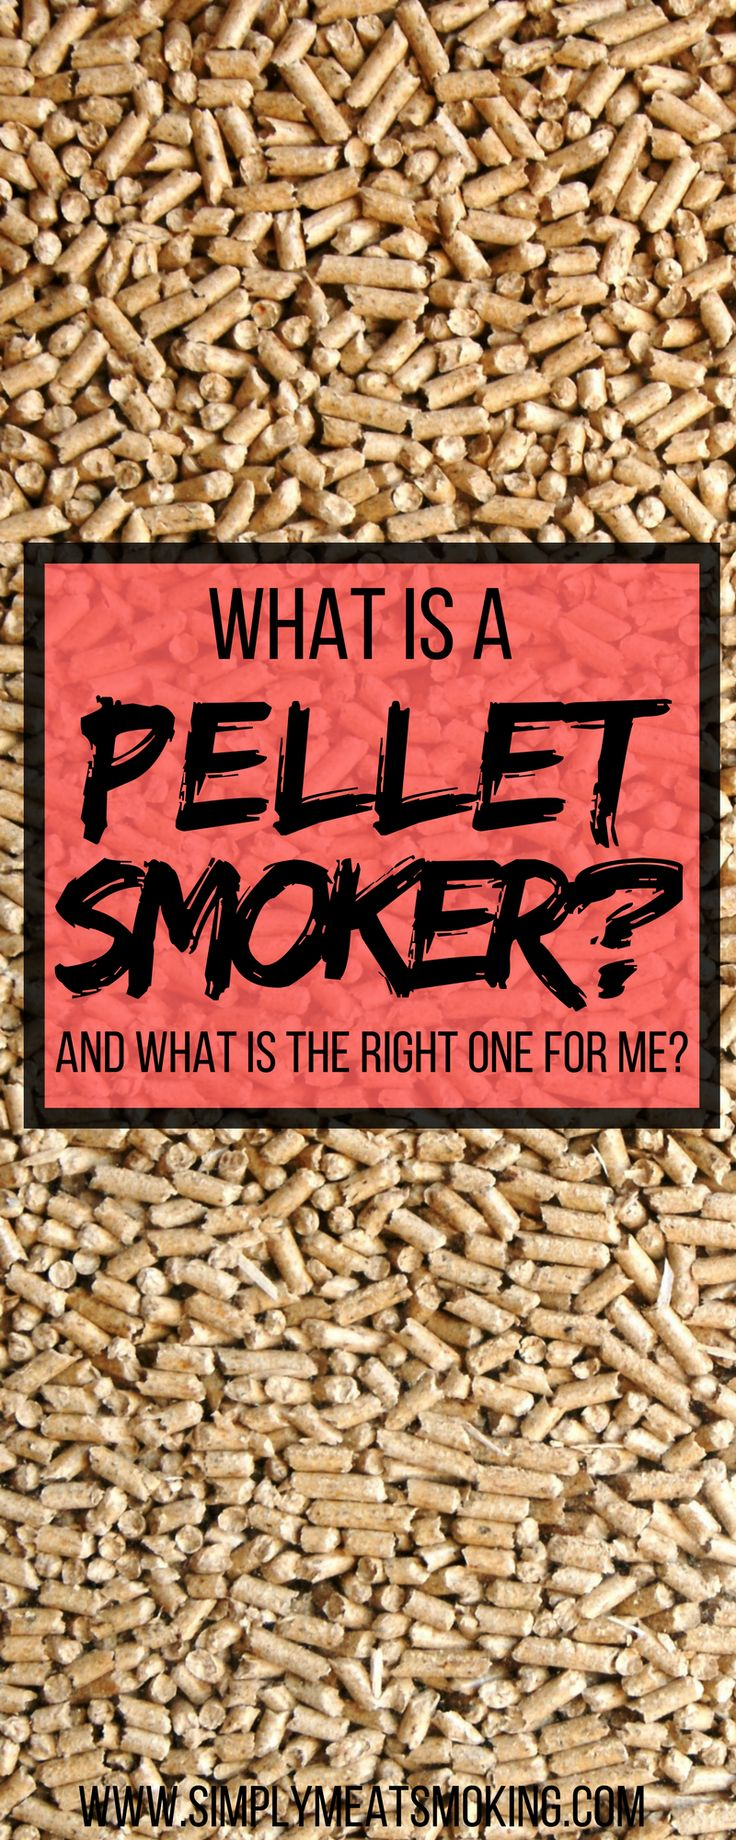 Are you confused by all the BBQ terms? Ill break down what a pellet smoker is for you and if you really need one | Pellet Smoker | Pellet Grill | Pellet BBQ | Gas Smoker | Gas Grill | Best Gas Grill | Best Gas Smoker | Best Gas BBQ | Best Gas Barbecue | B